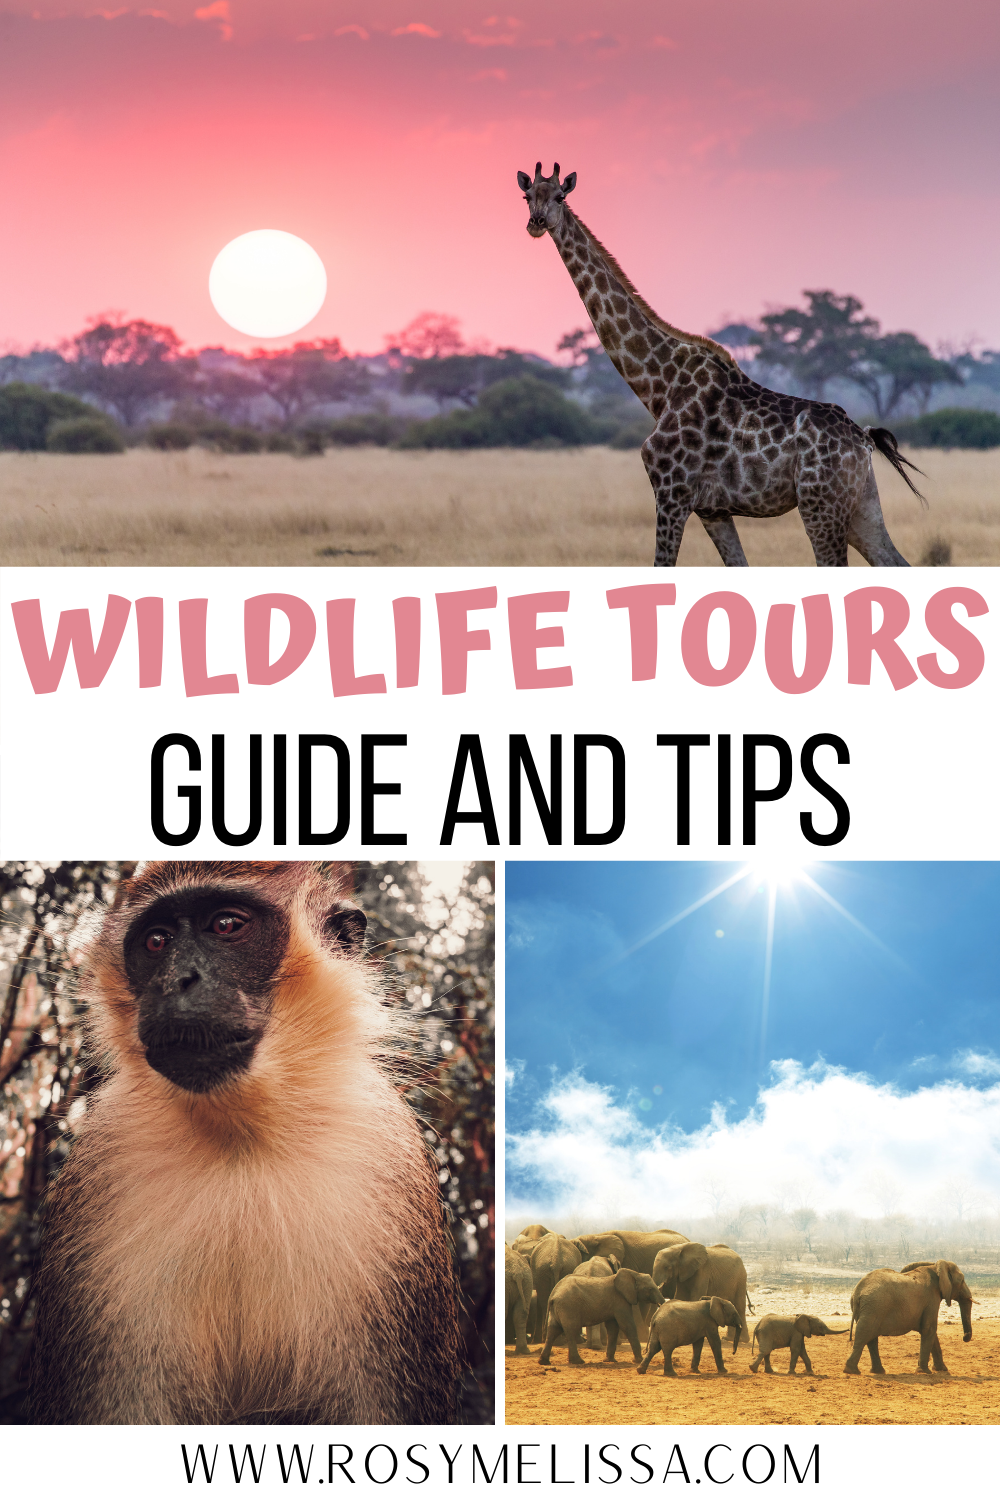 animal rights guidelines for wildlife tourism, animal tourism, animal tourism, animal excursions